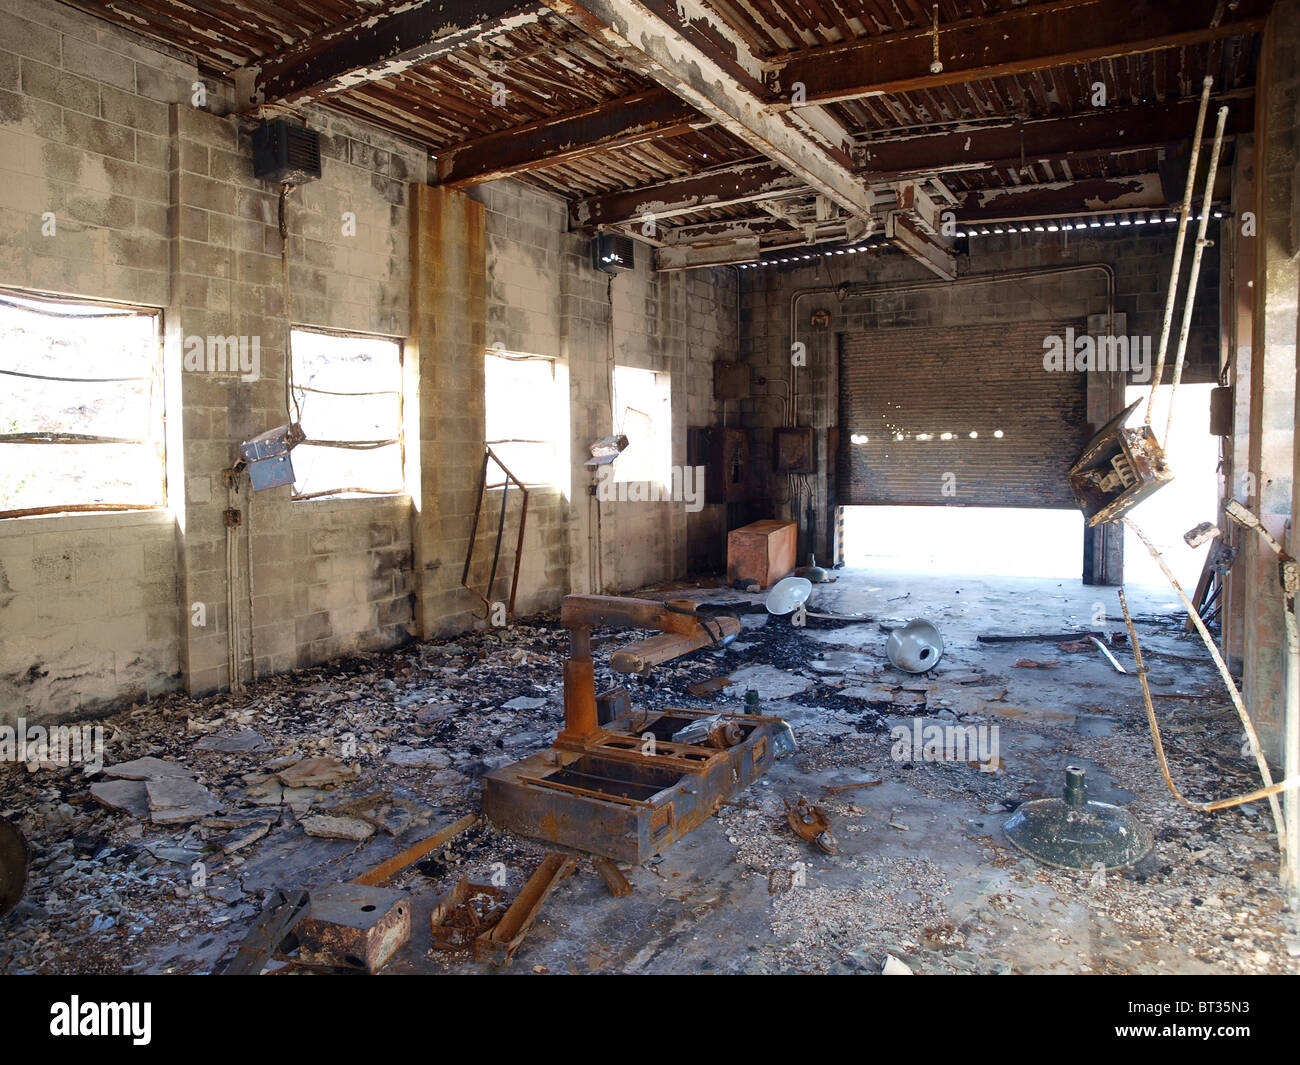 Burned out, blasted out, government owned industrial ruin. - Stock Image